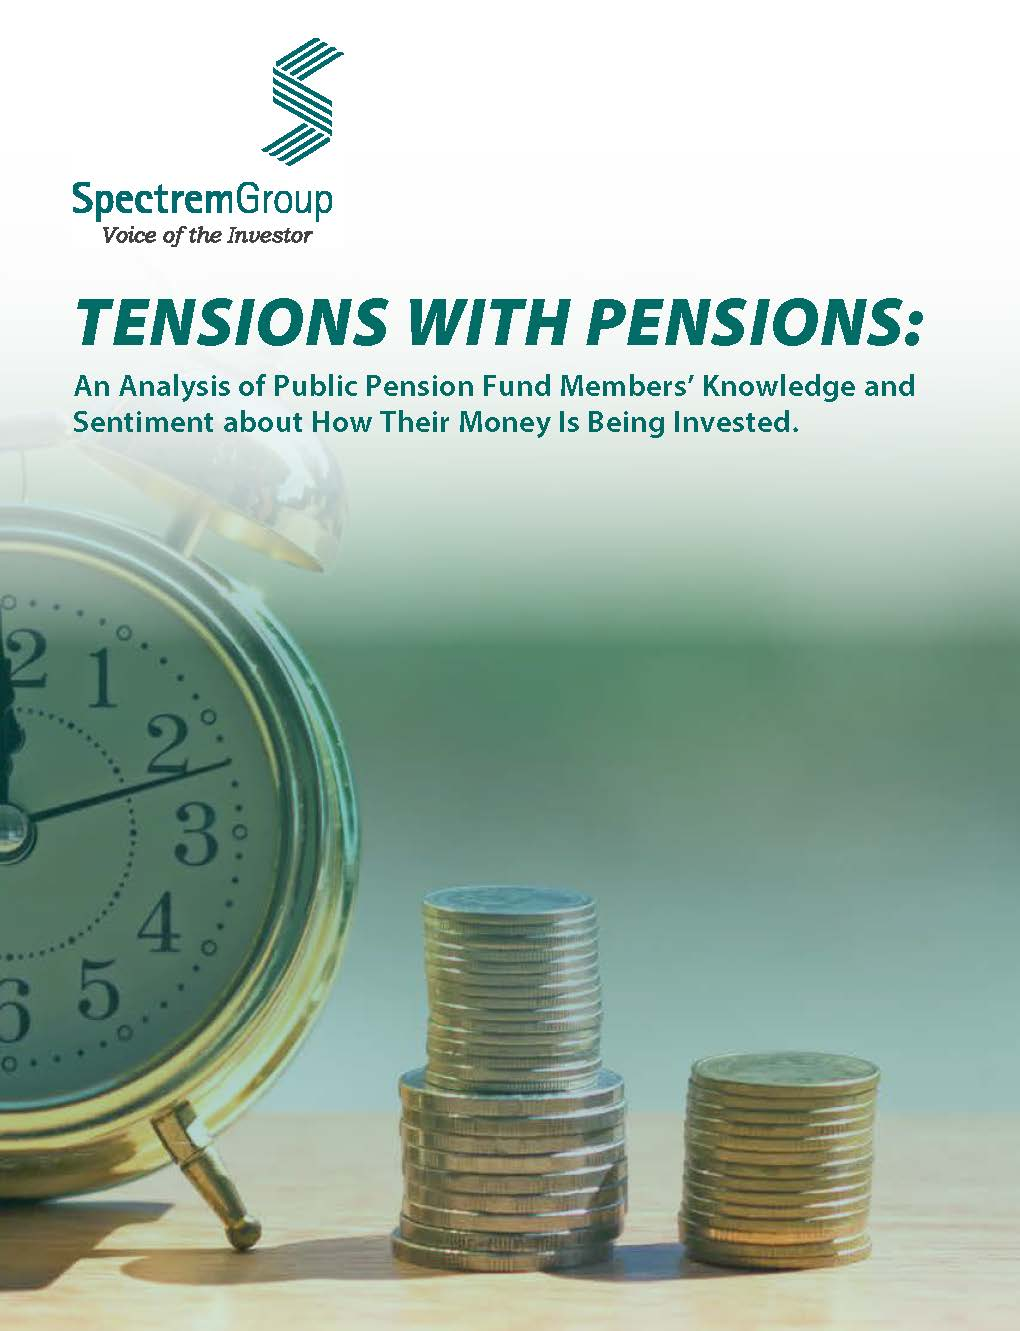 Tensions with Pensions: An Analysis of Public Pension Fund Members' Knowledge and Sentiment About How Their Money is Being Invested